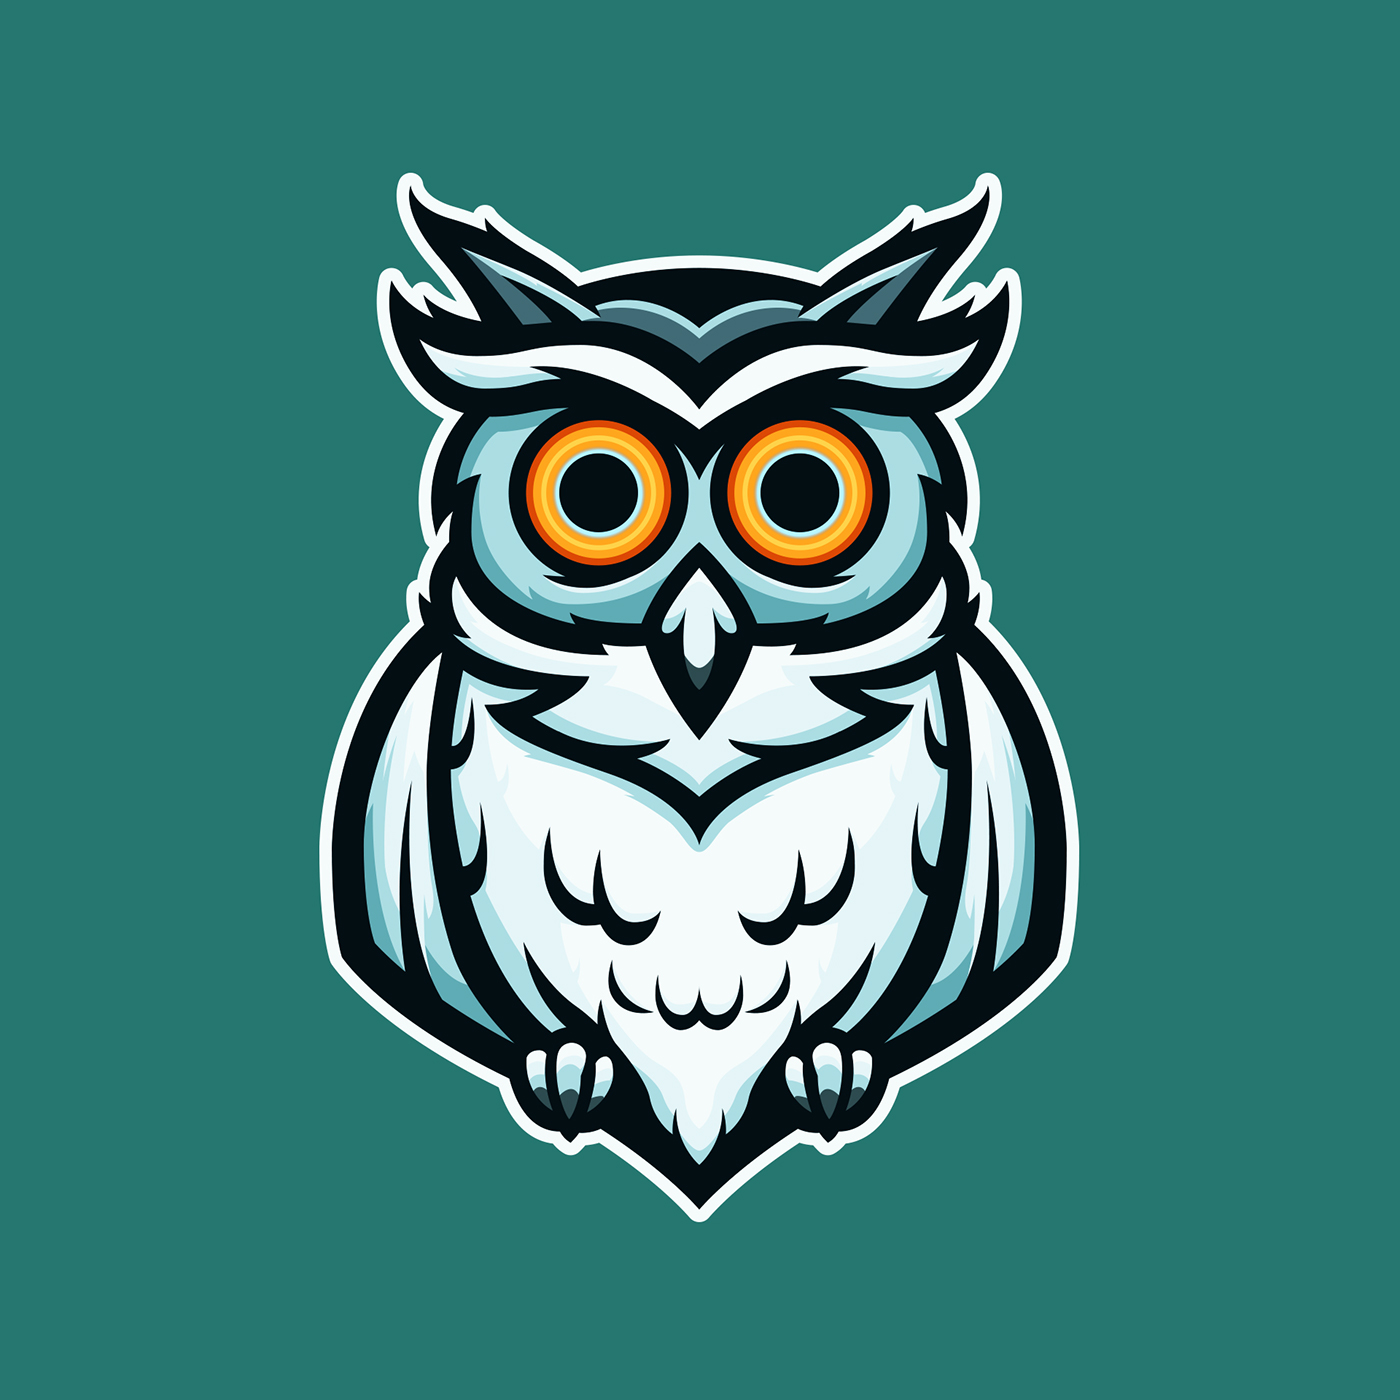 Owl Mascot Logo / Illustration : Illustration.